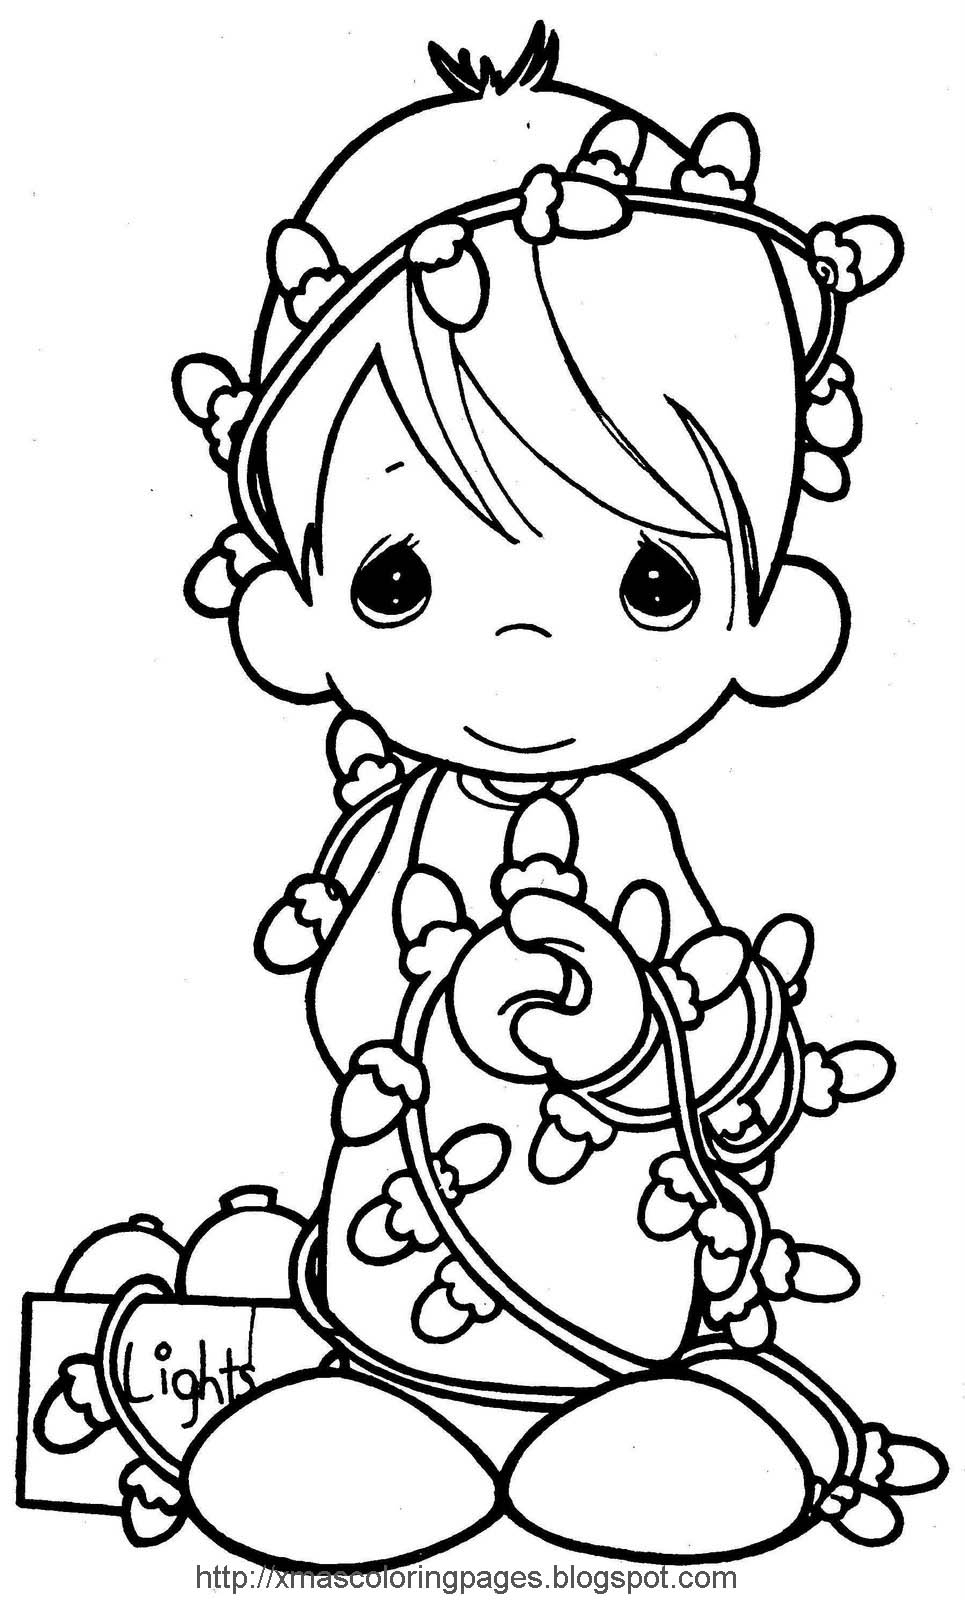 free christmas coloring pages for kids | XMAS COLORING PAGES